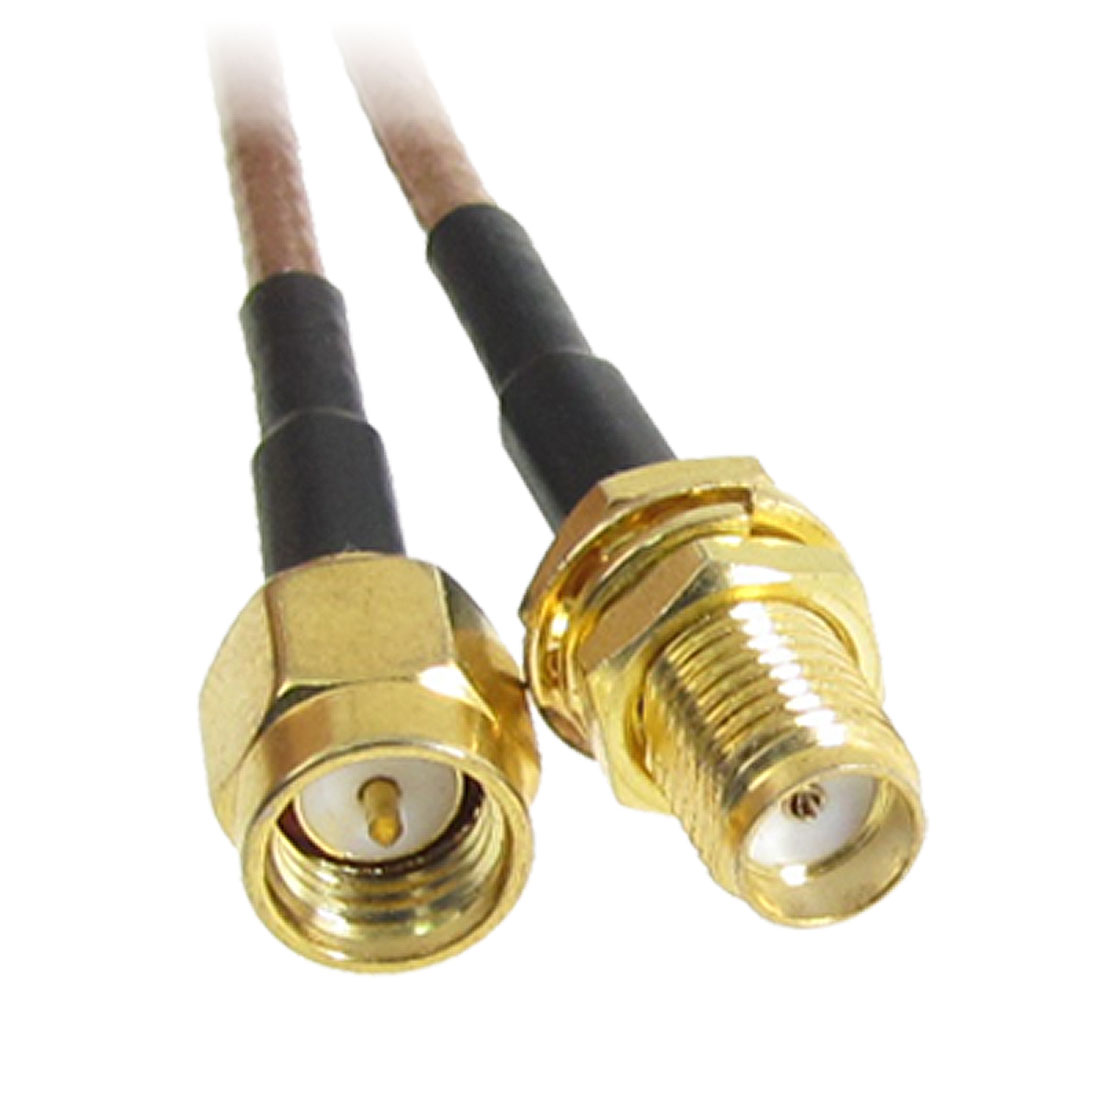 "12.4"" Gold Tone SMA Male Plug to Female RF Connector Adapter pigtail Cable"